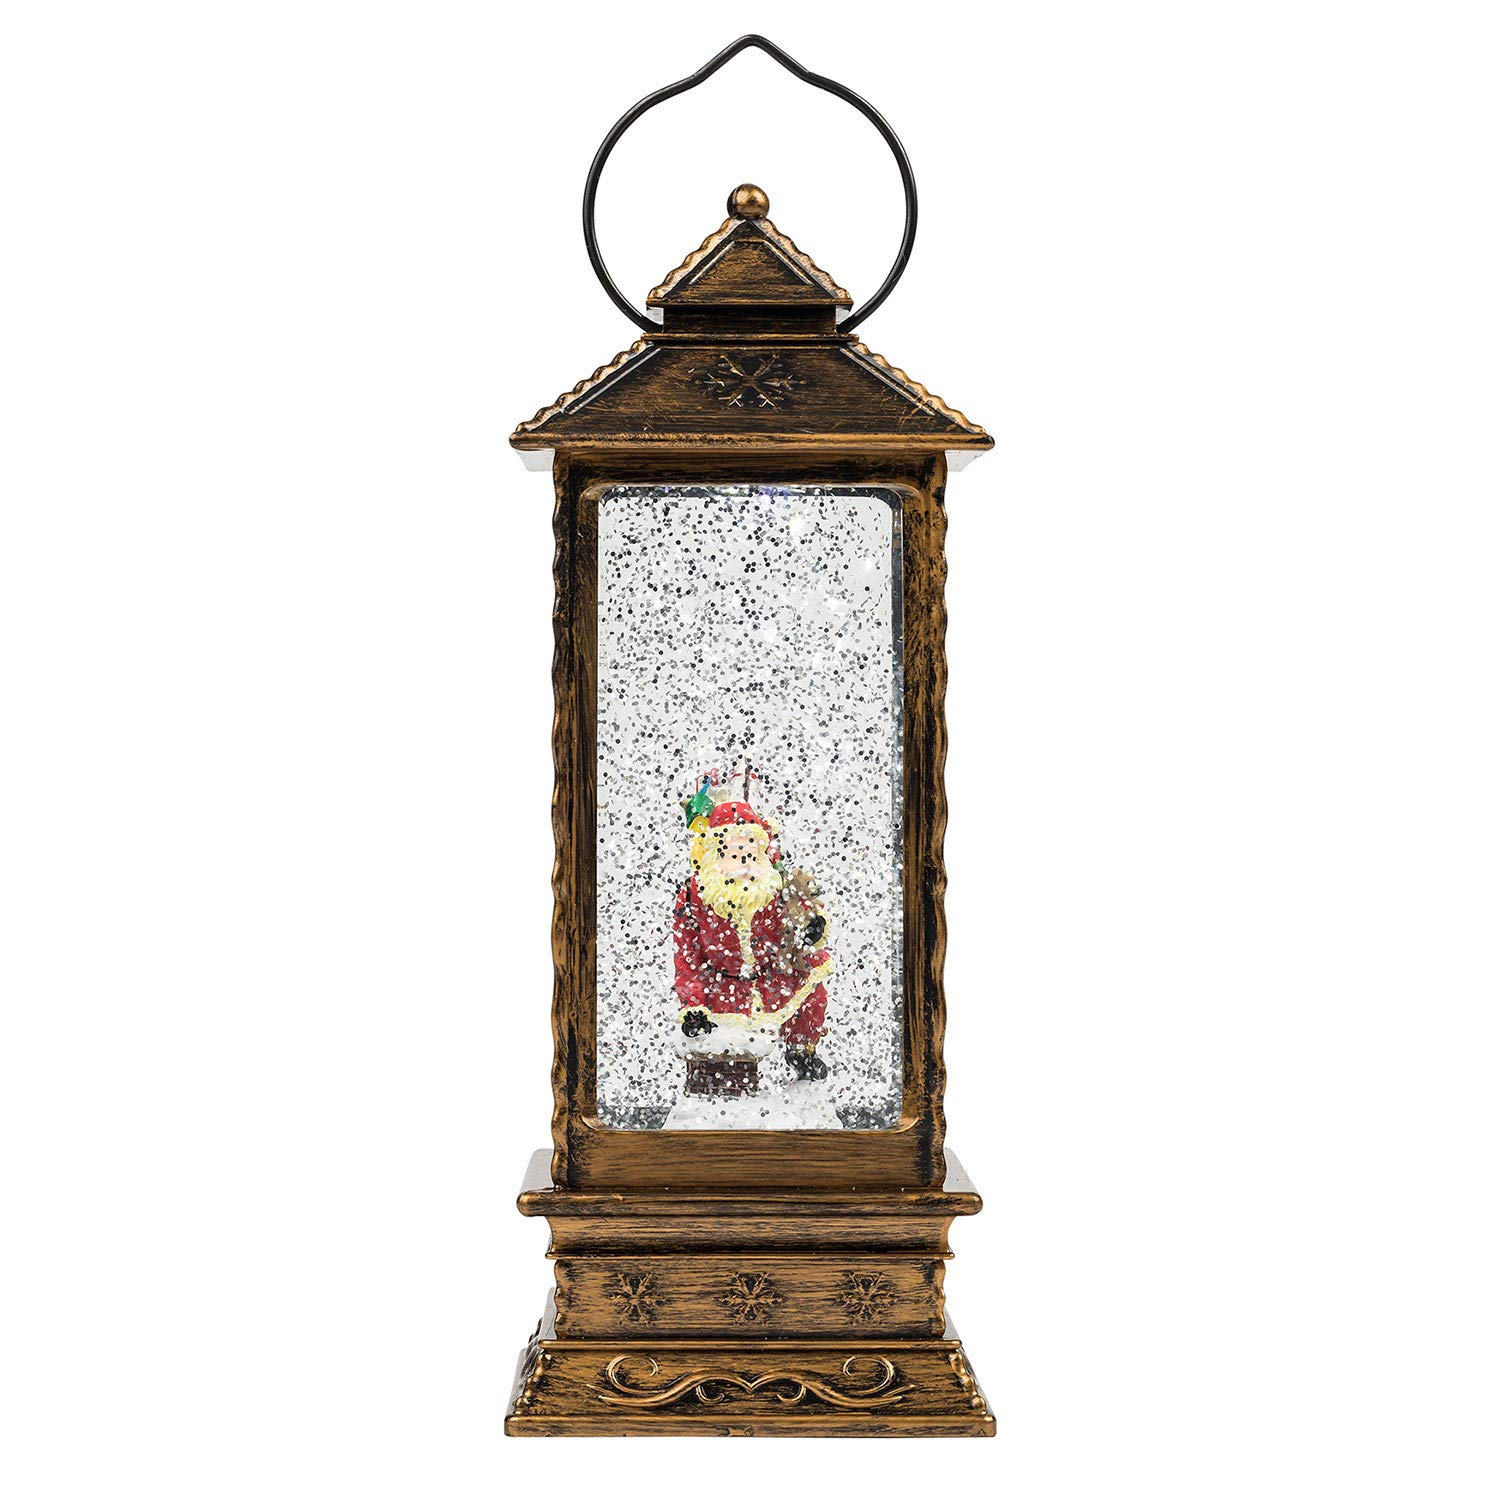 TRIXES LED Decorative Christmas Lantern - Water and Glitter - Indoor Ornament with Santa Scene - Battery Operated XMS147